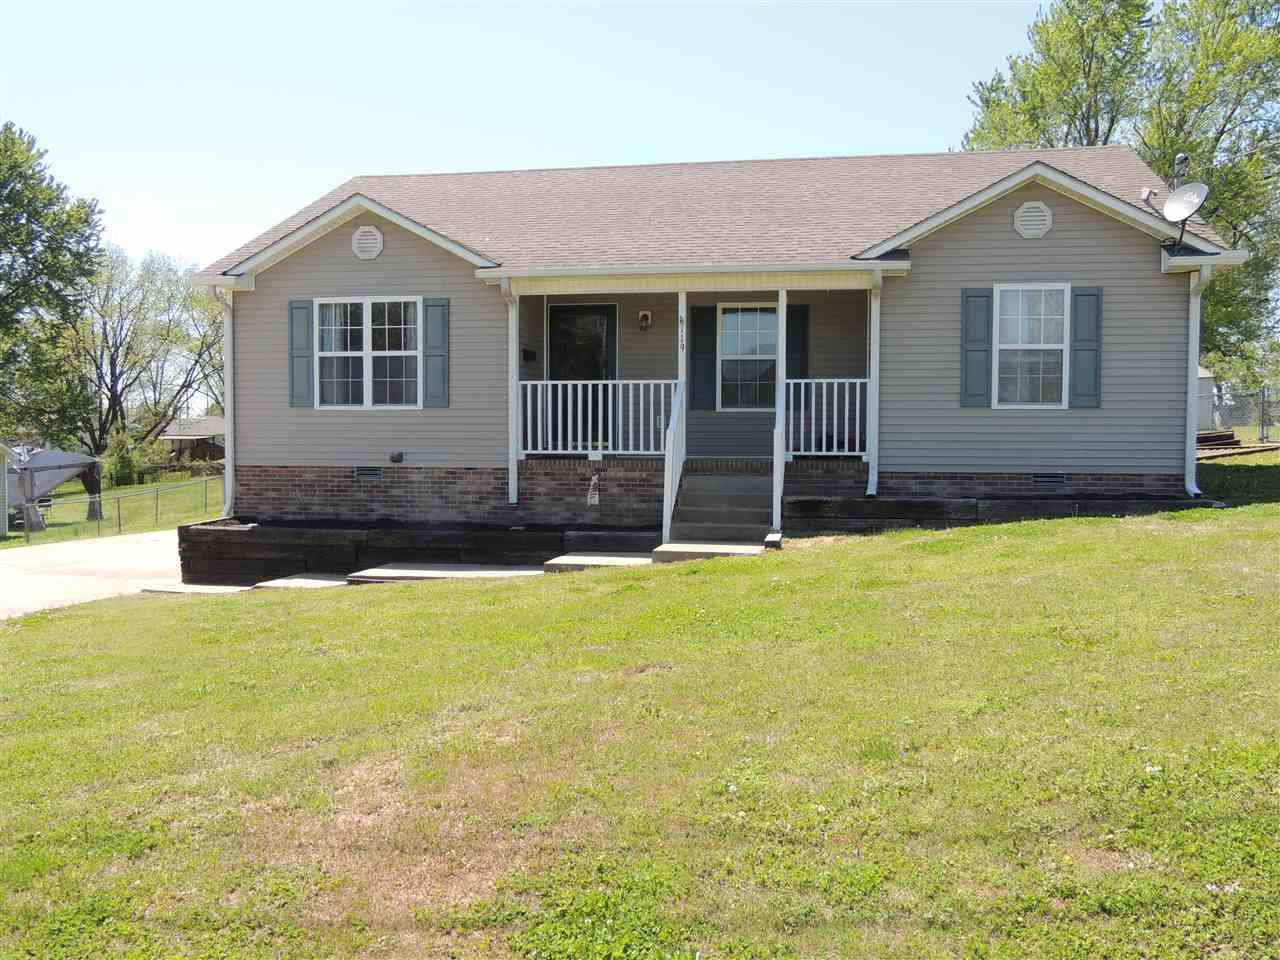 119 East Drive,Newbern,Tennessee 38059,3 Bedrooms Bedrooms,2 BathroomsBathrooms,Residential,119 East Drive,182621